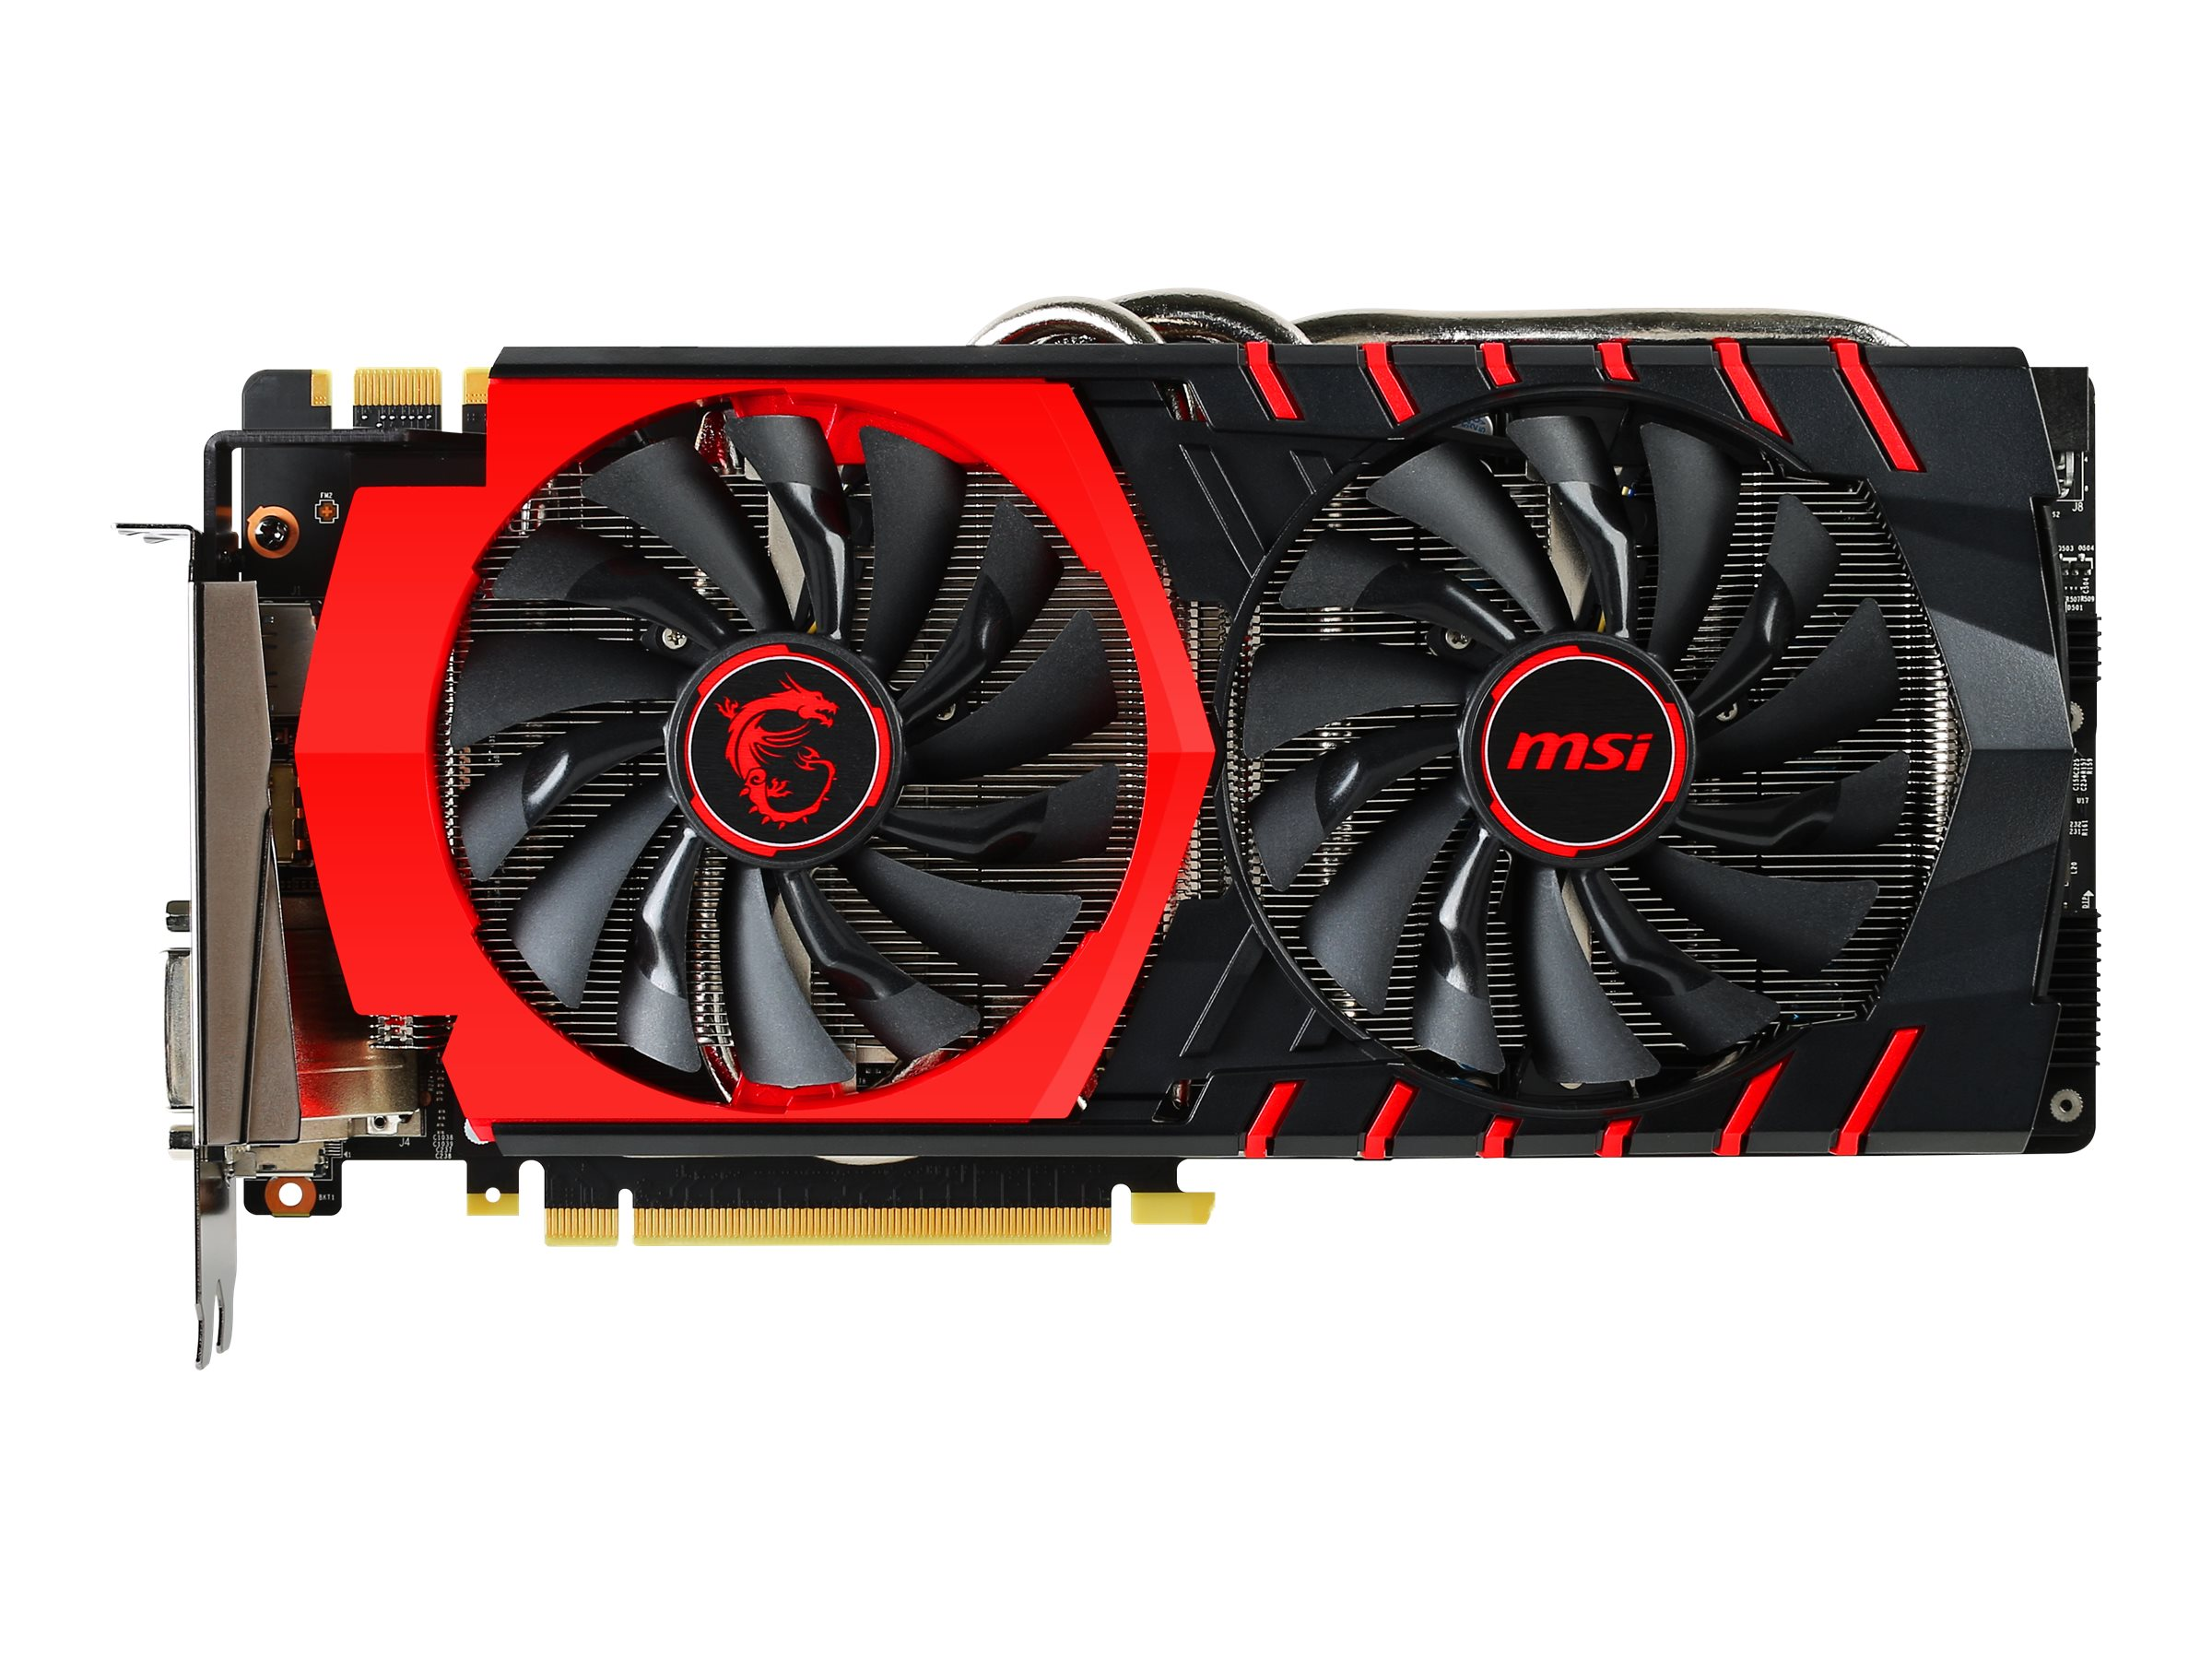 Microstar NVIDIA Geforce GTX 980Ti PCIe 3.0 x16 Graphics Card, 6GB GDDR5, GTX 980TI GAMING 6G, 23619201, Graphics/Video Accelerators